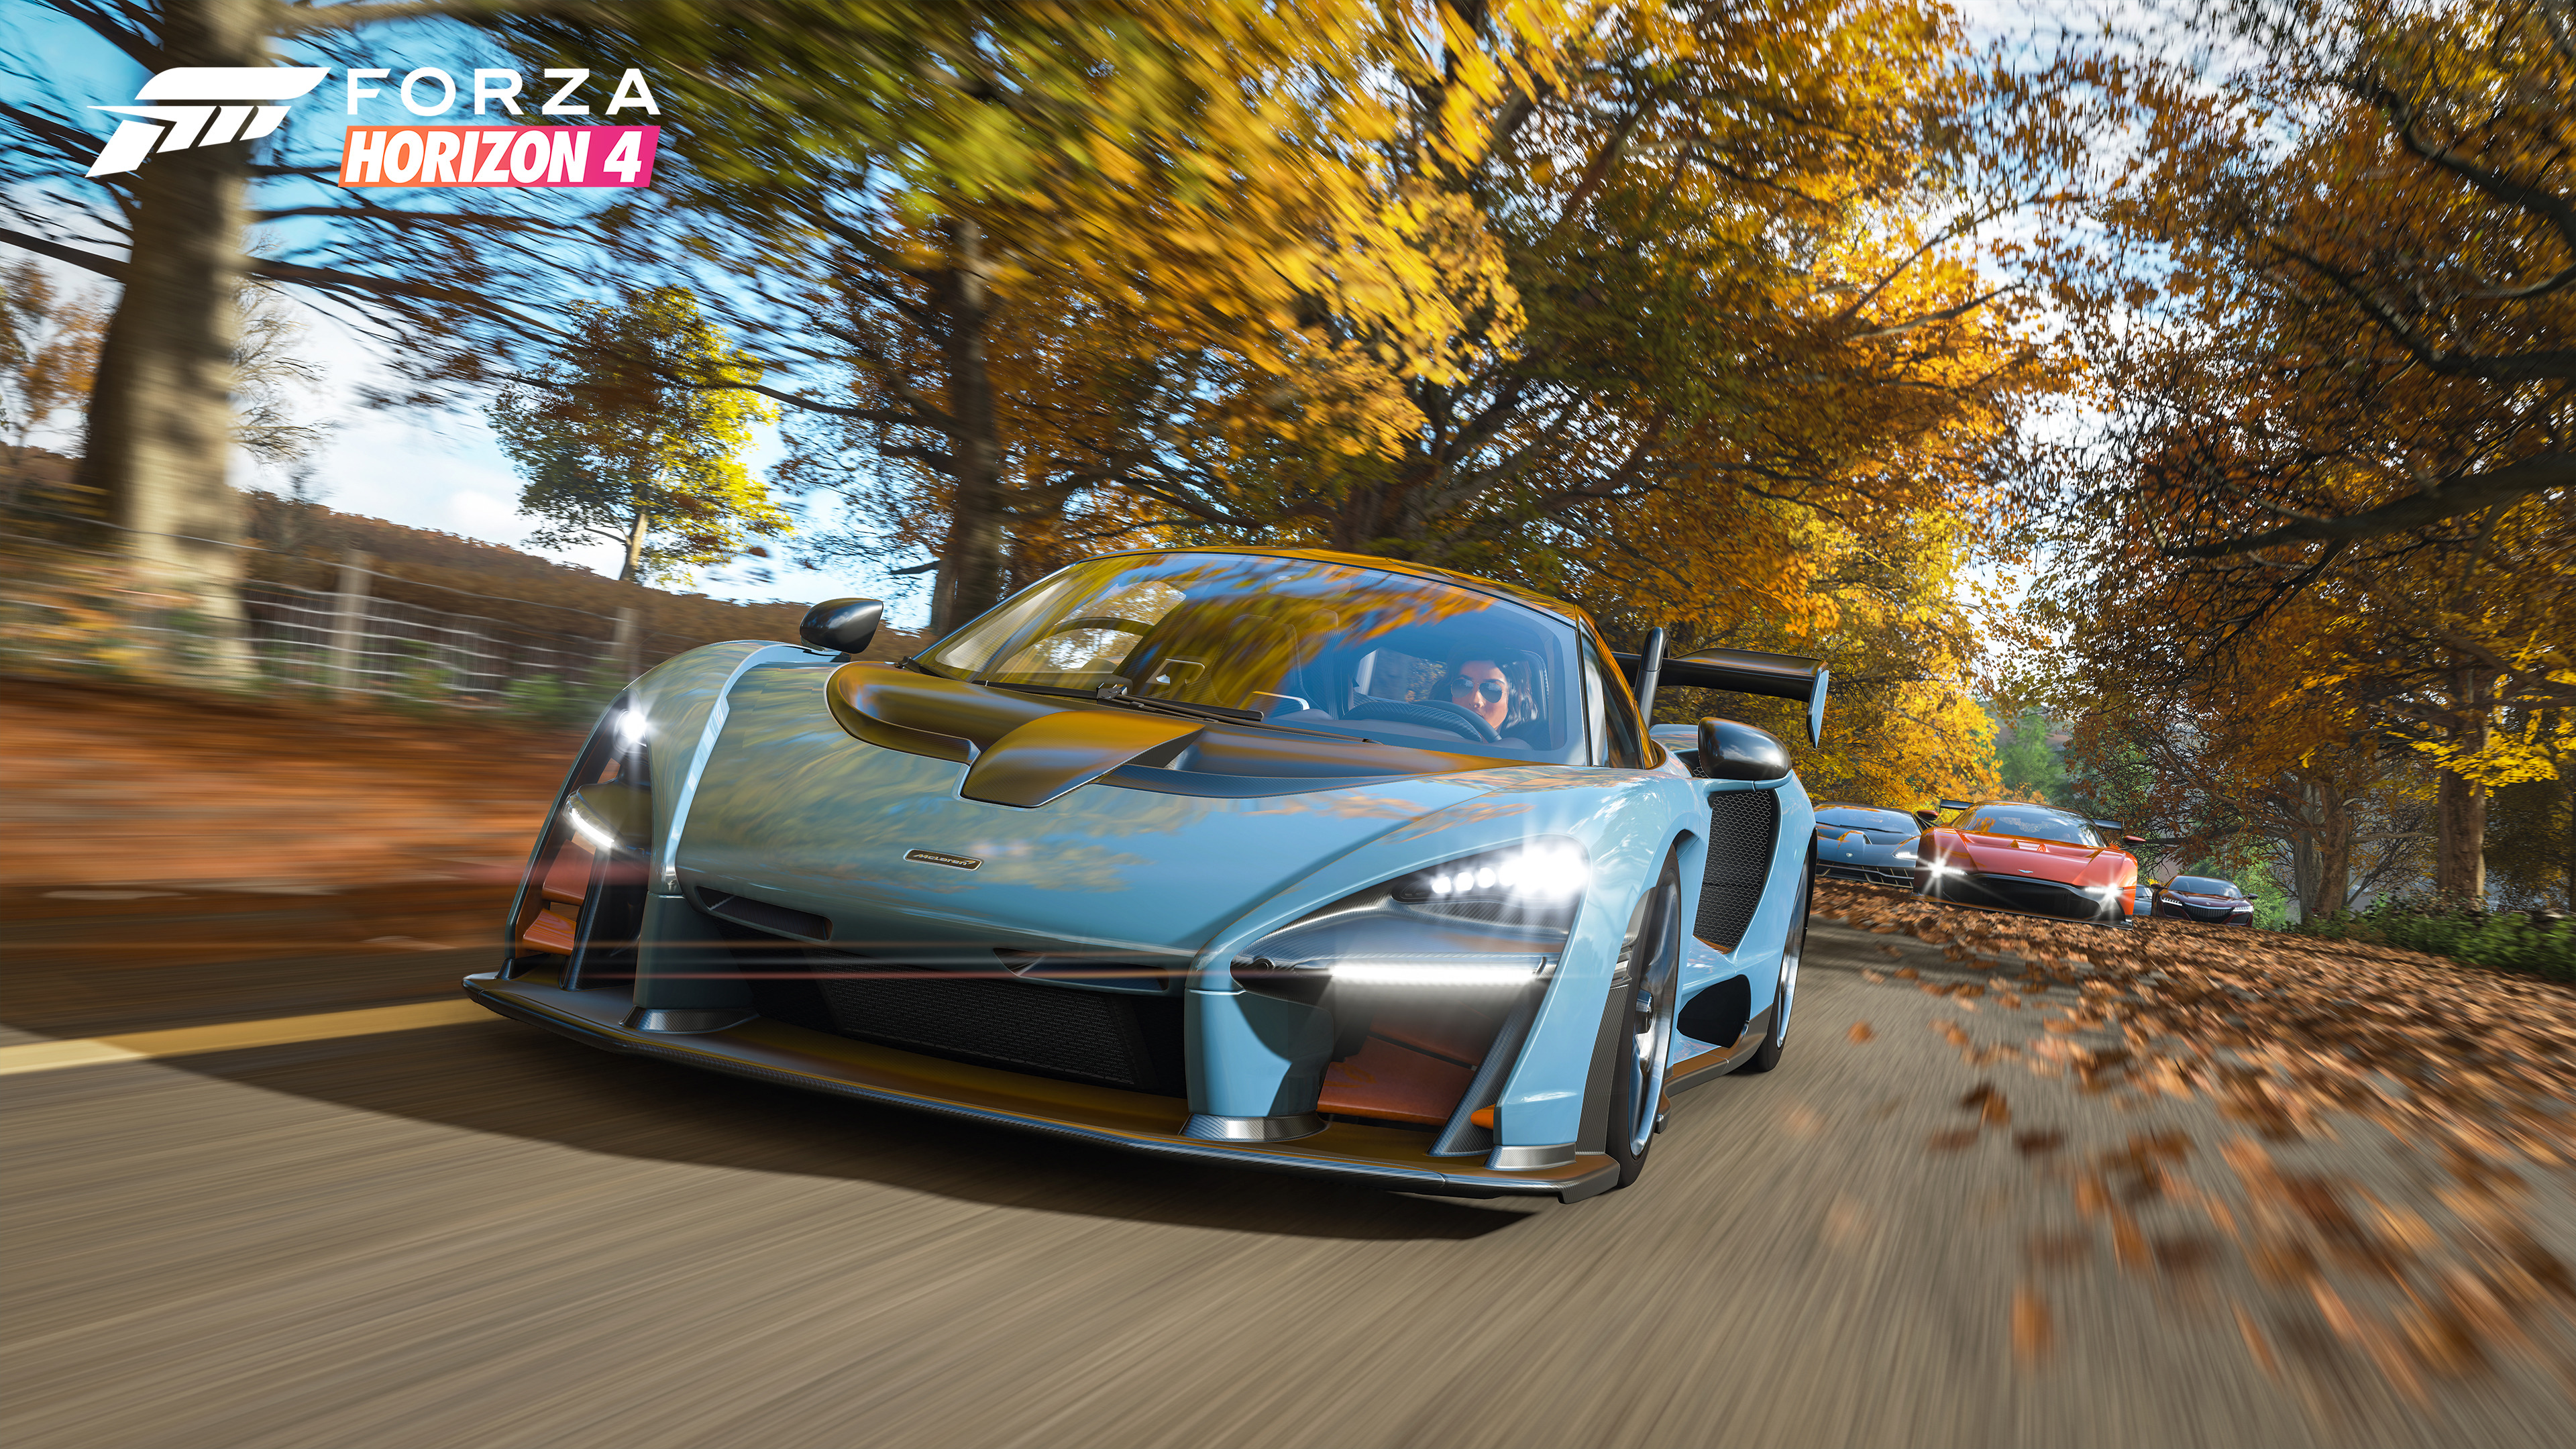 Forza Horizon 4 2018 Hd Games 4k Wallpapers Images